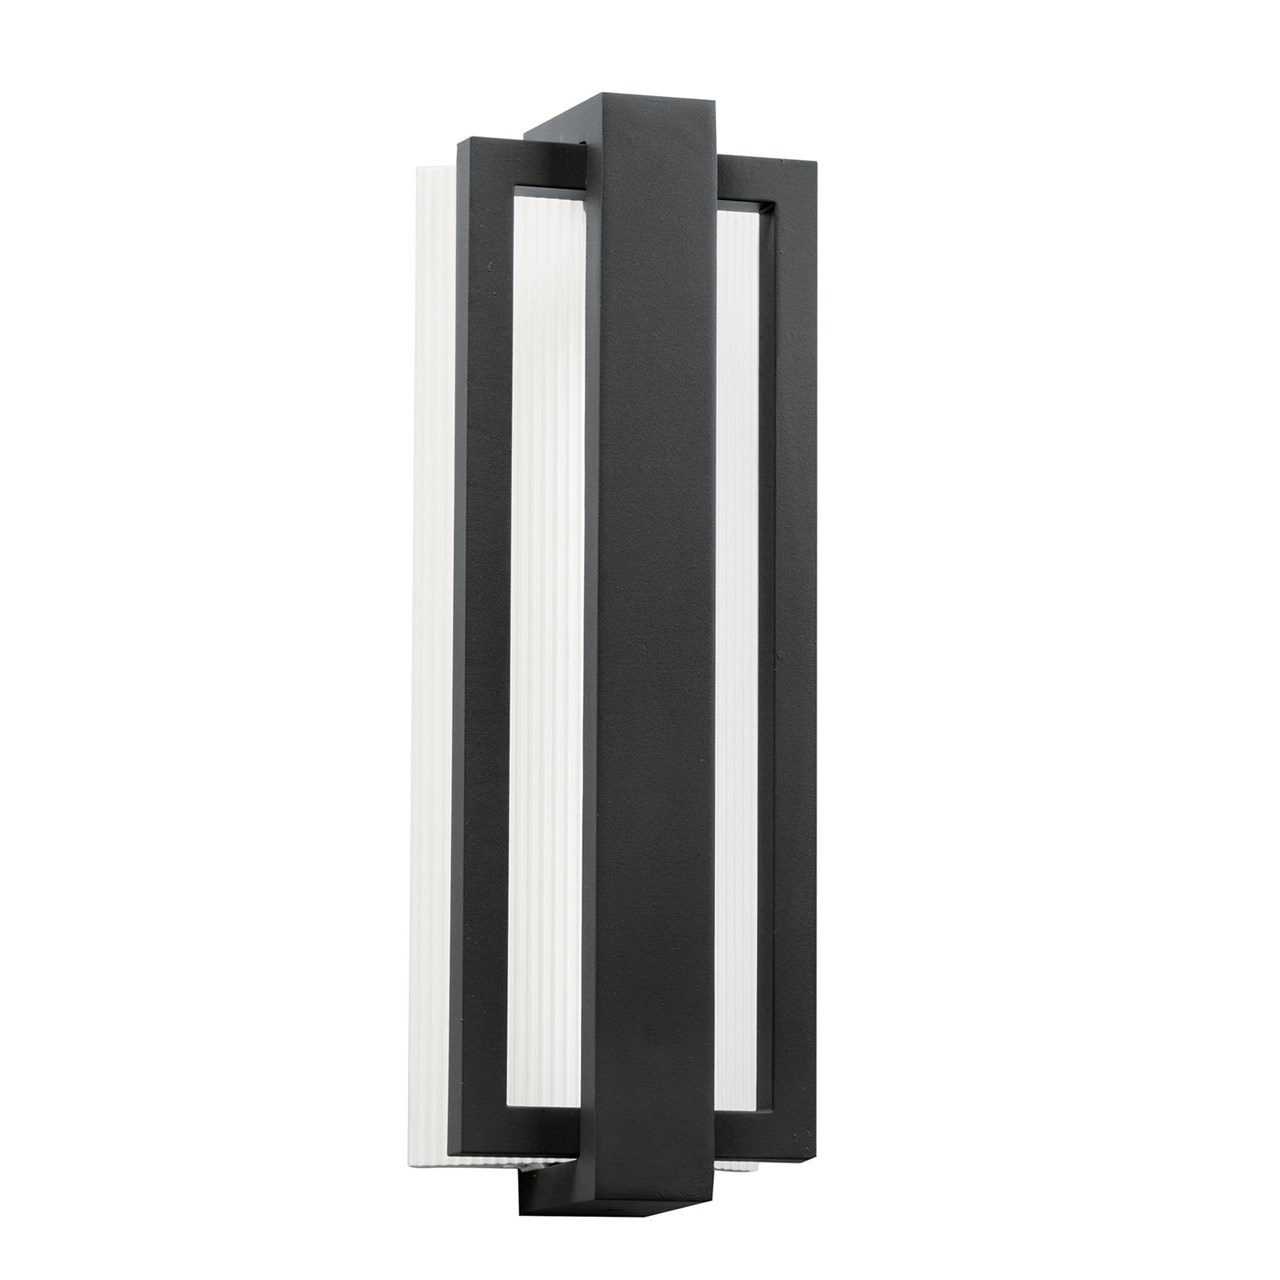 "Sedo 18.25"" 1 Light LED Wall Light Satin Black"